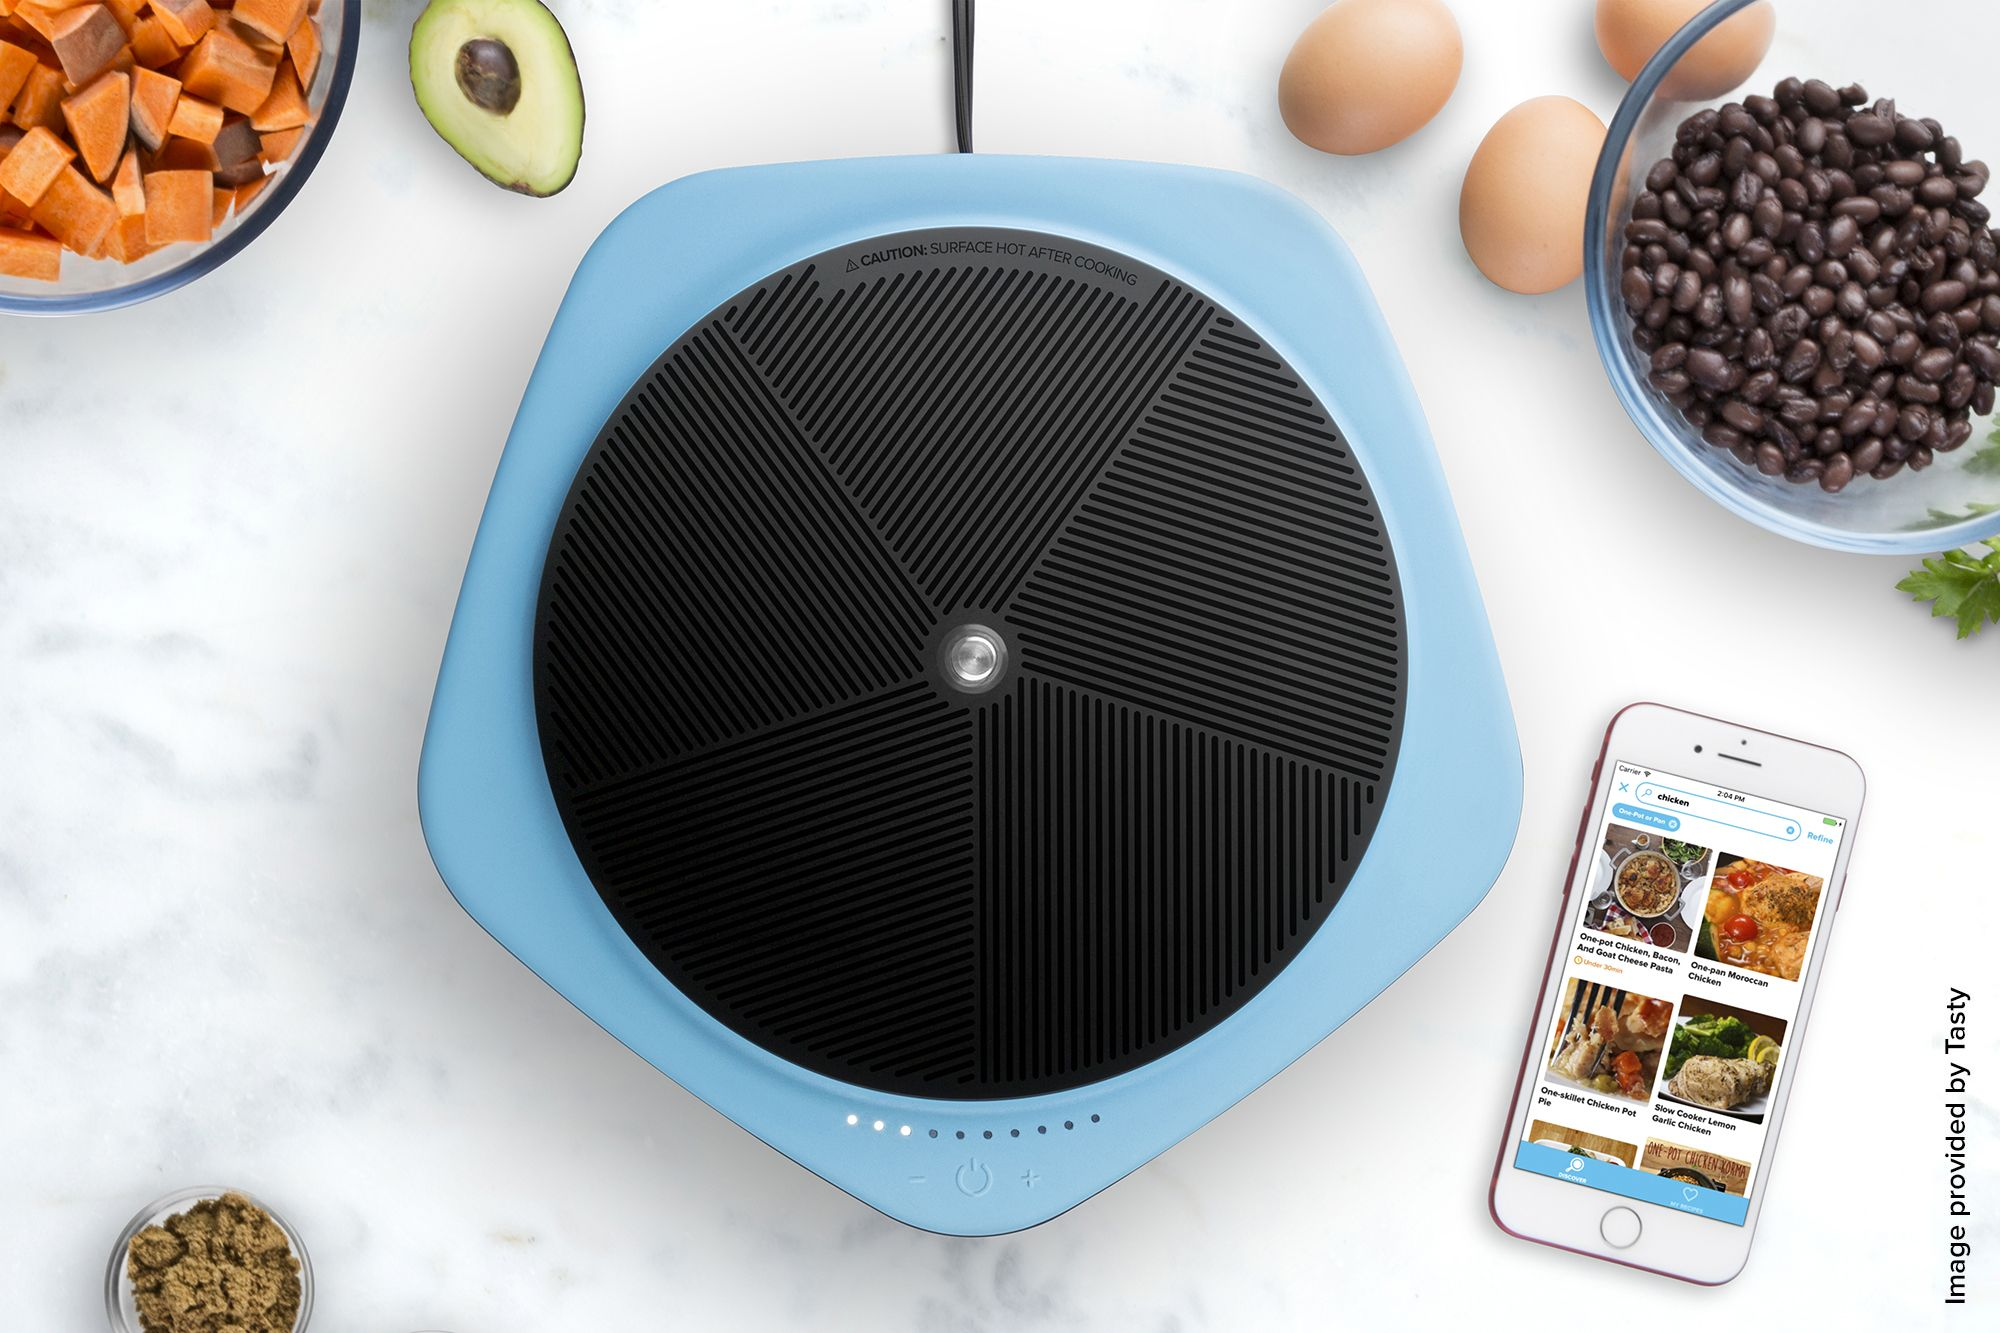 Pin By Frank Sweis On Design And Ux Cooking Gadgets Hot Plate Buzzfeed Tasty